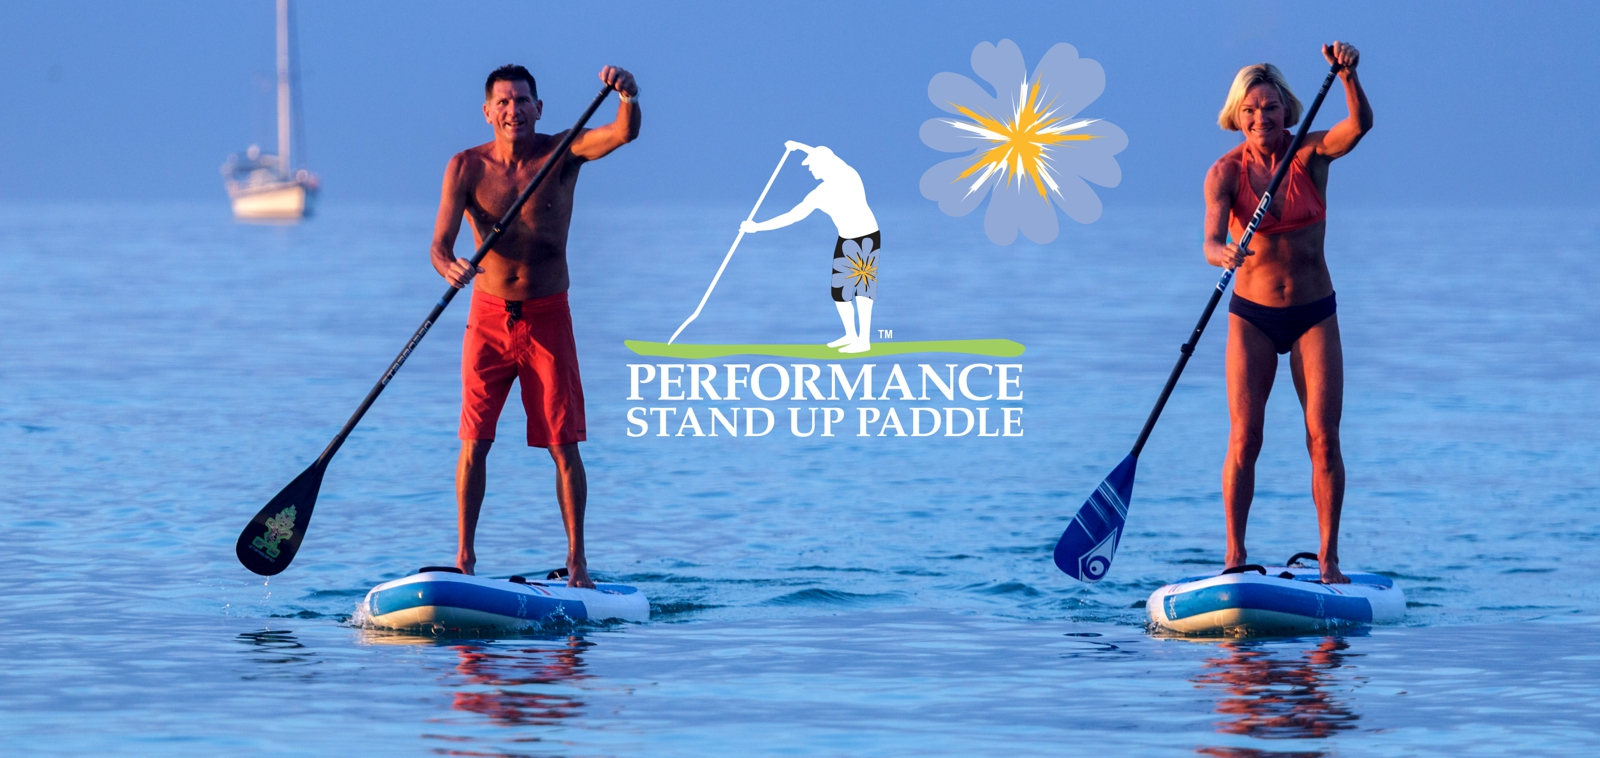 Shane and Mia professional SUP paddlers on the ocean SUP paddling